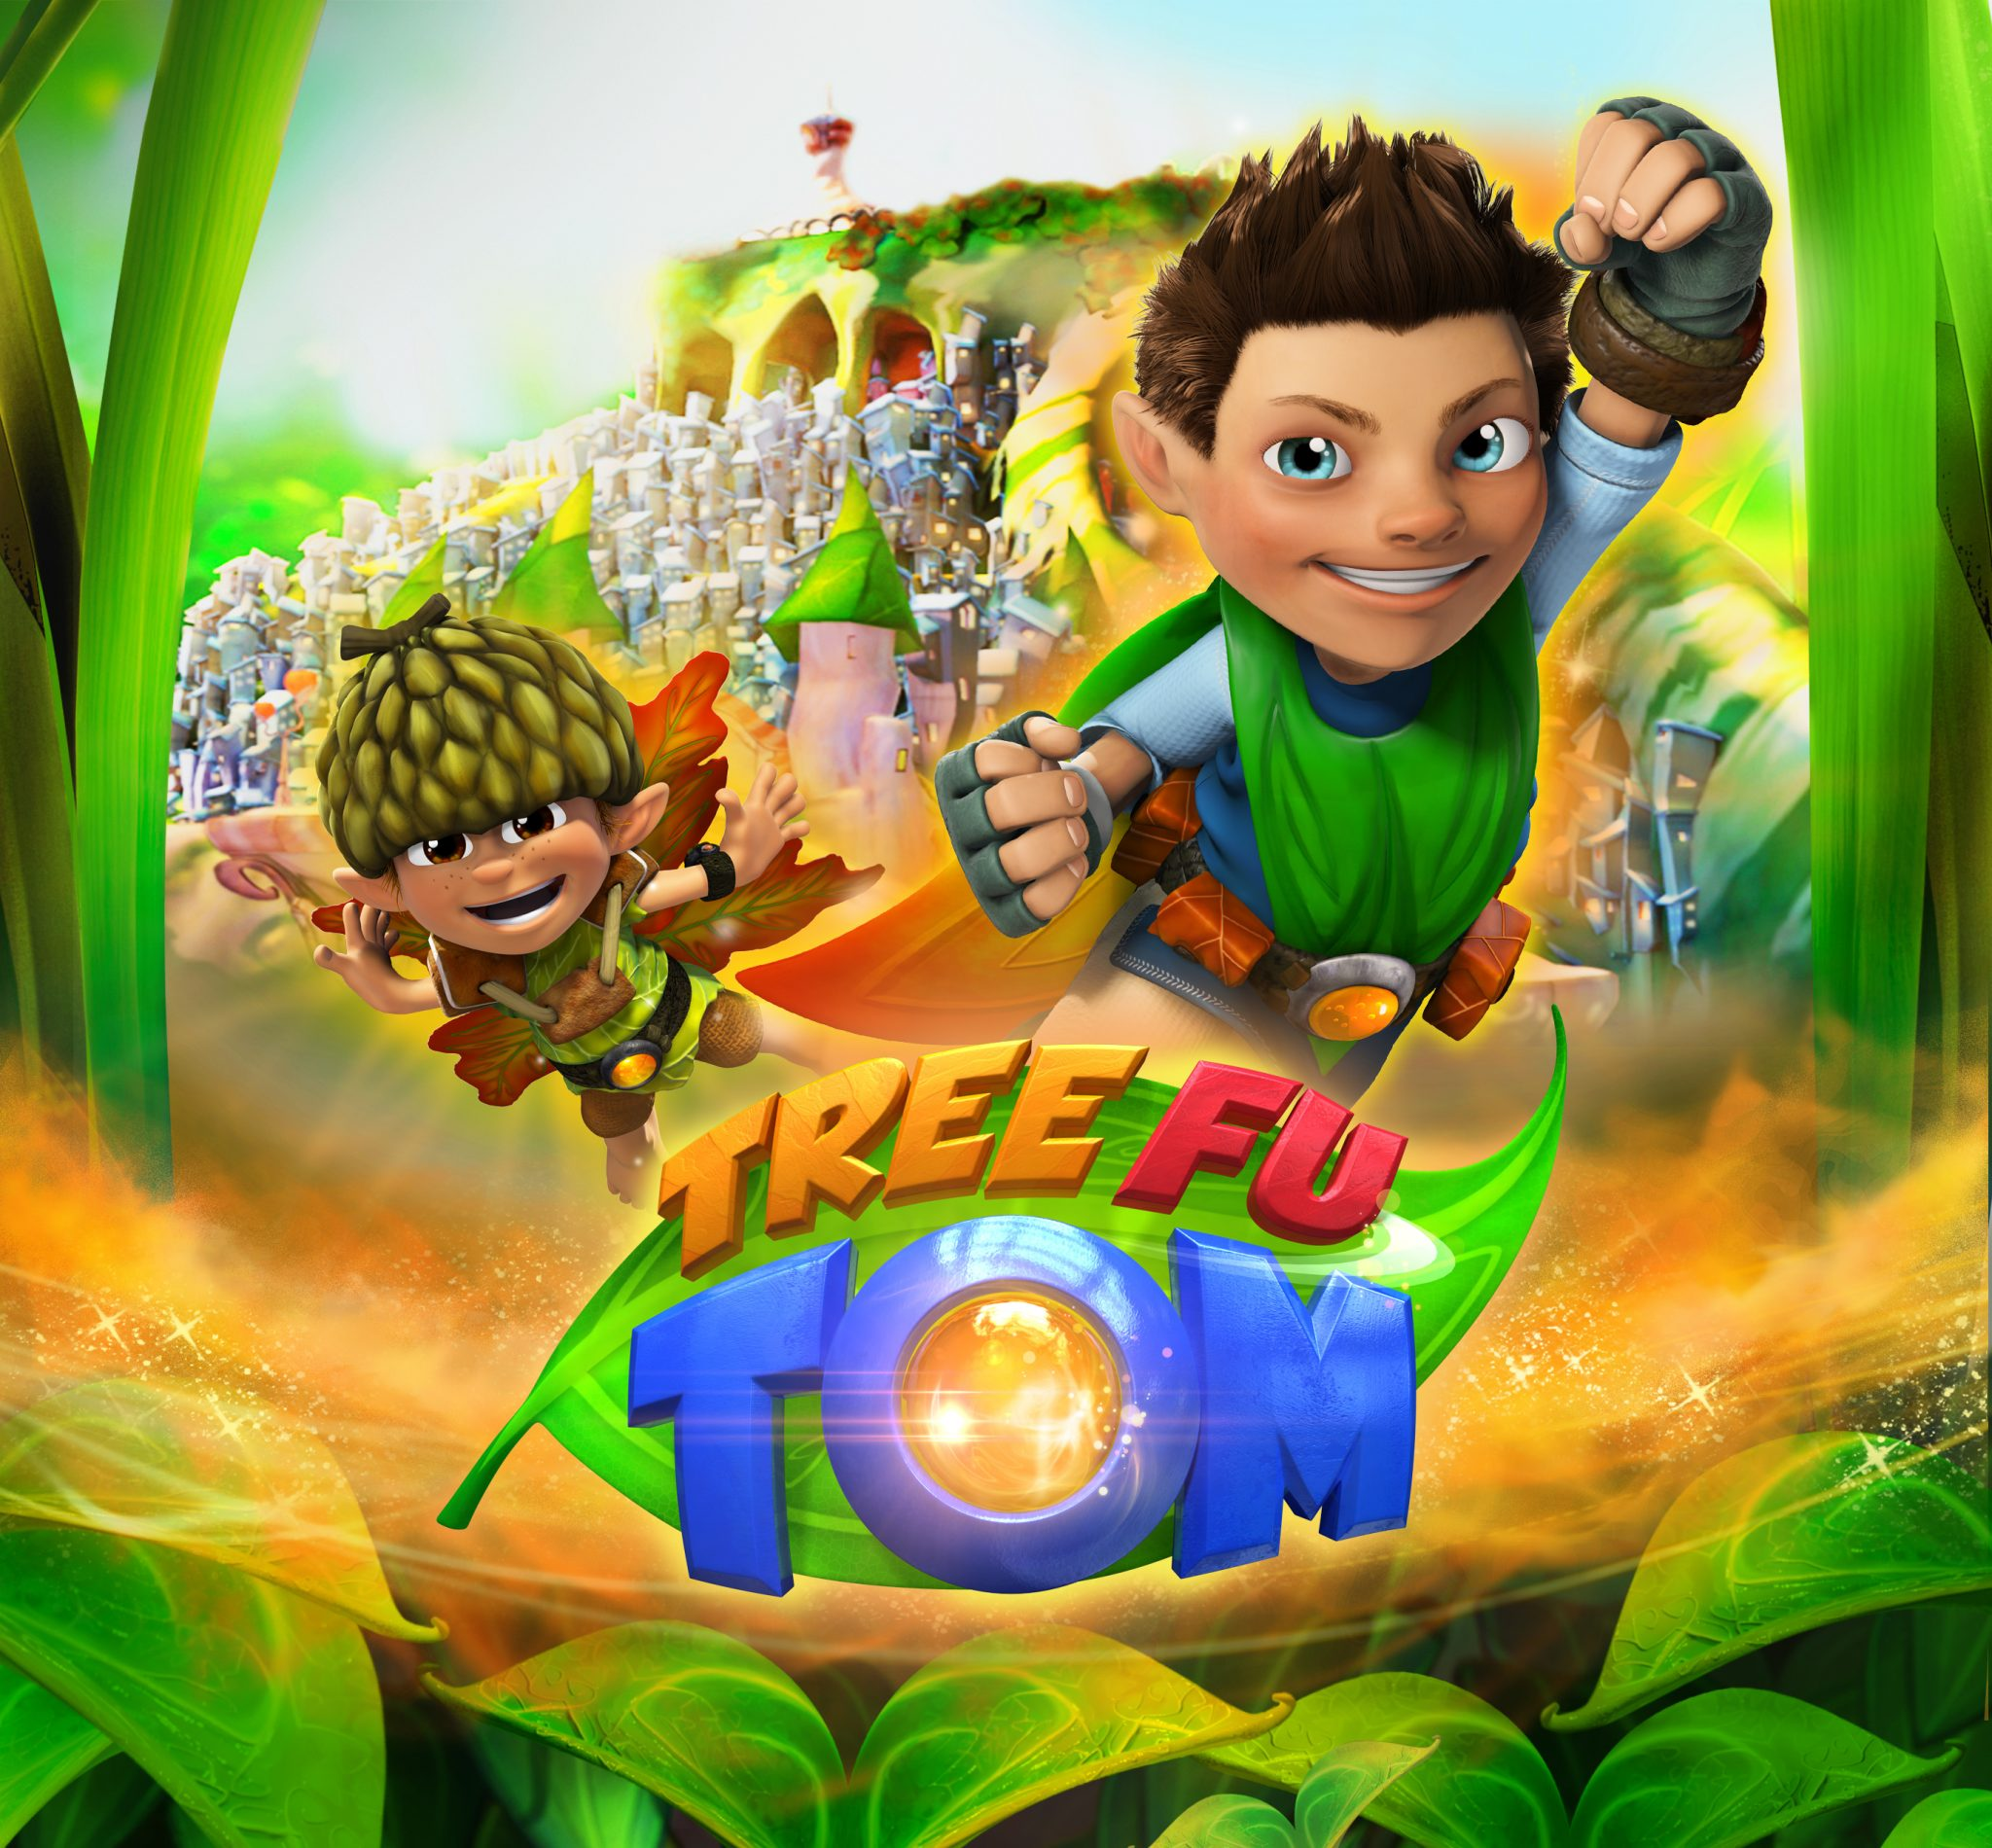 Tree Fu Tom springs up at Sprout – TBI Vision